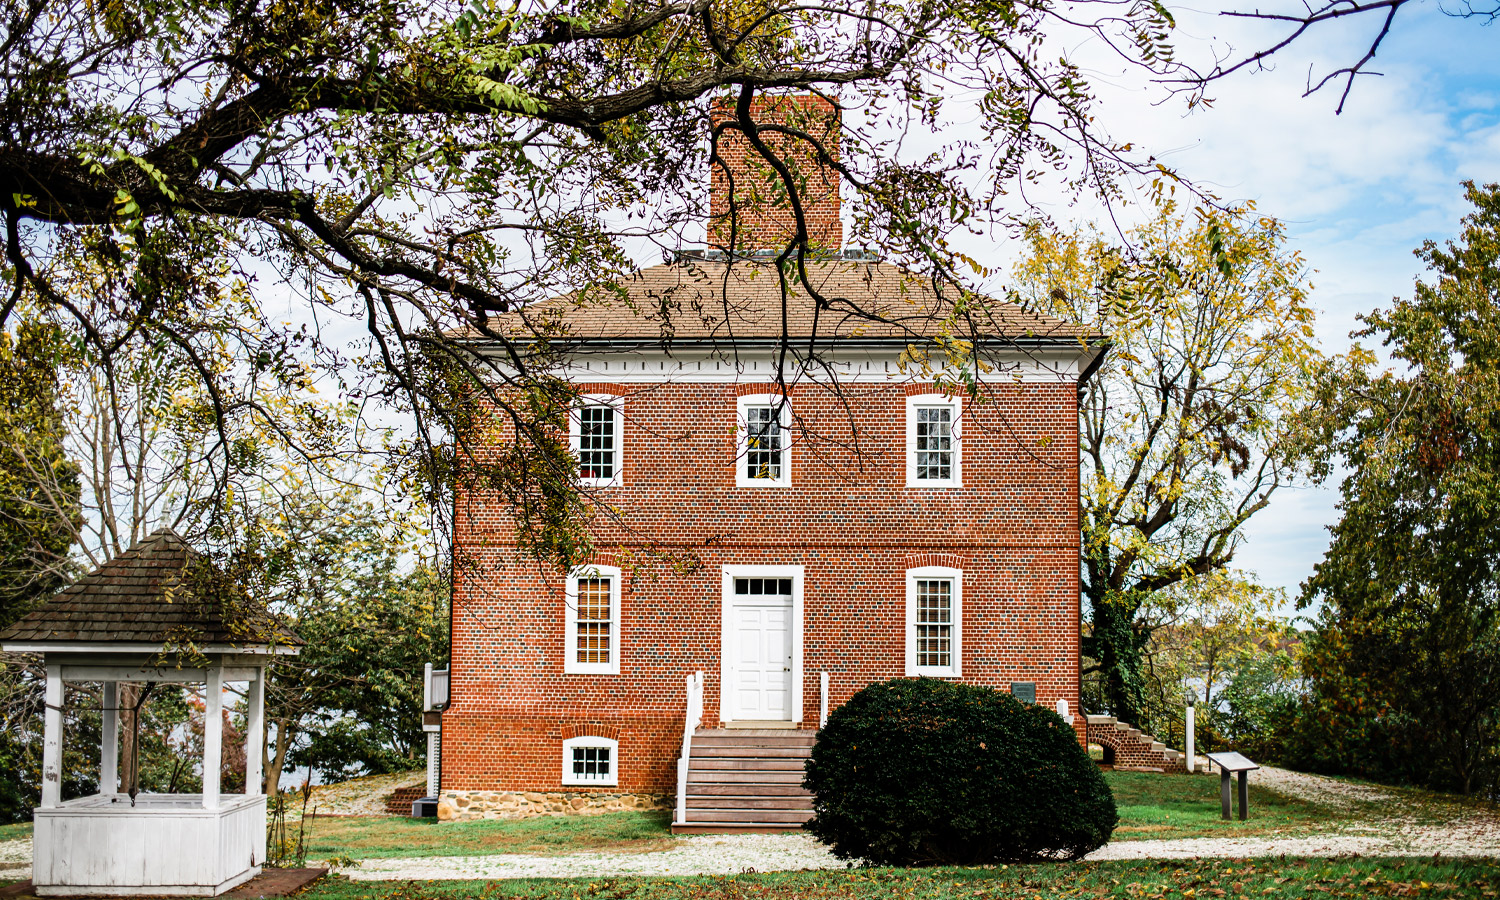 Discover a Lost Colonial Seaport » Maryland Road Trips